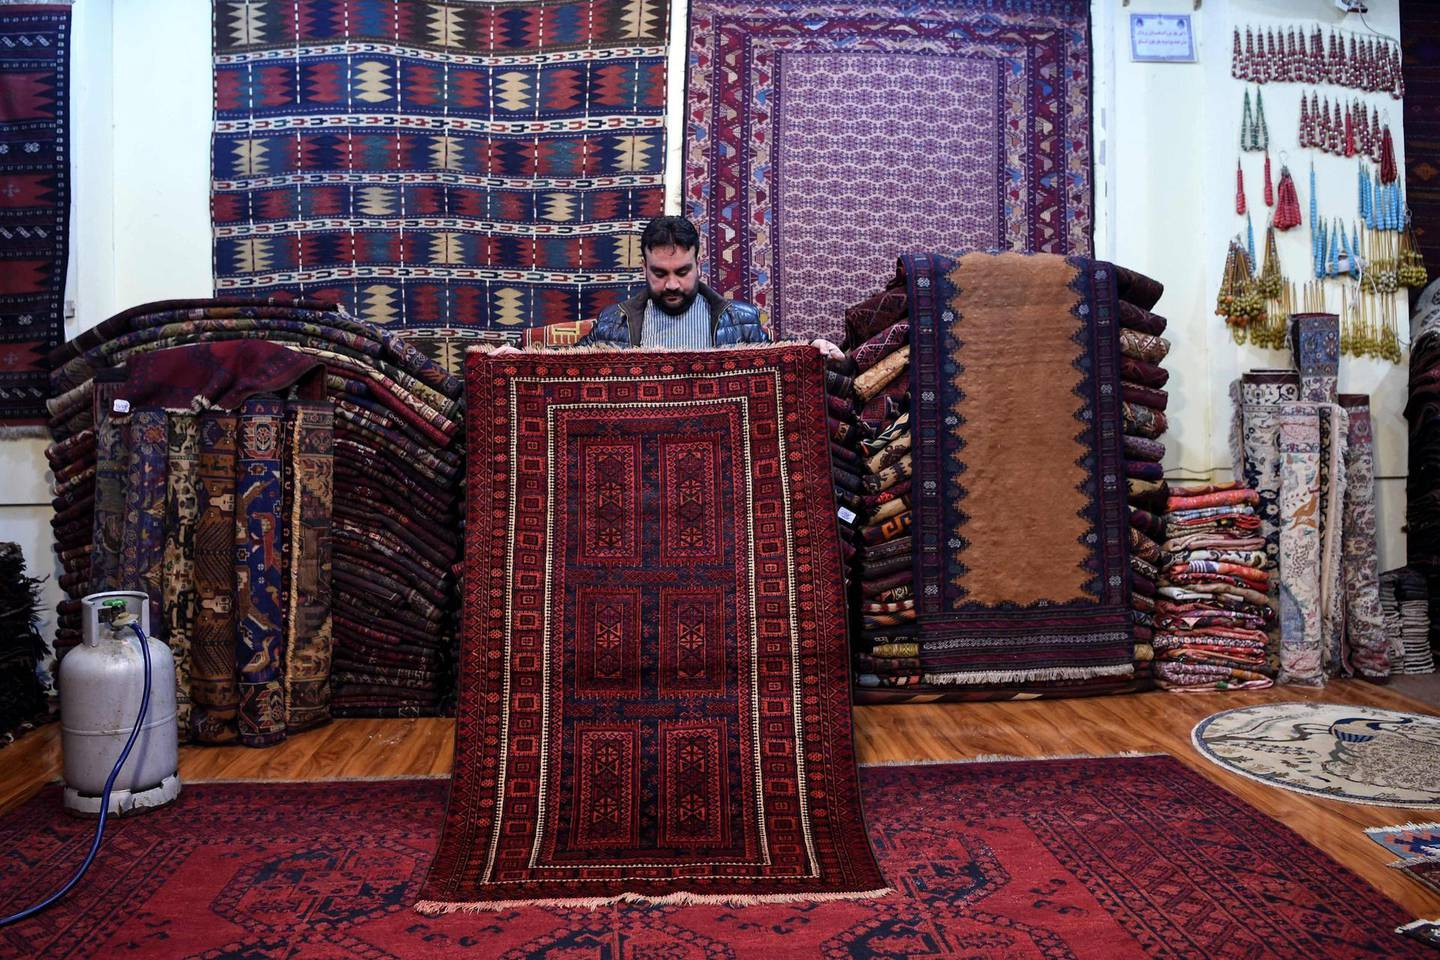 In this picture taken on January 18, 2021, Abdul Wahab, a tribal carpet collector displays a rug during an interview with AFP inside his shop at Chicken Street in Kabul. Rug hunters can spend weeks -- if not months -- passing through villages like sleuths along old caravan trails, offering cash or bartering with modern goods to amass a diverse selection of pieces they can later peddle in rug bazaars or to collectors. - TO GO WITH AFGHANISTAN-RUGS-CONFLICT,FEATURE BY DAVID STOUT  / AFP / WAKIL KOHSAR / TO GO WITH AFGHANISTAN-RUGS-CONFLICT,FEATURE BY DAVID STOUT